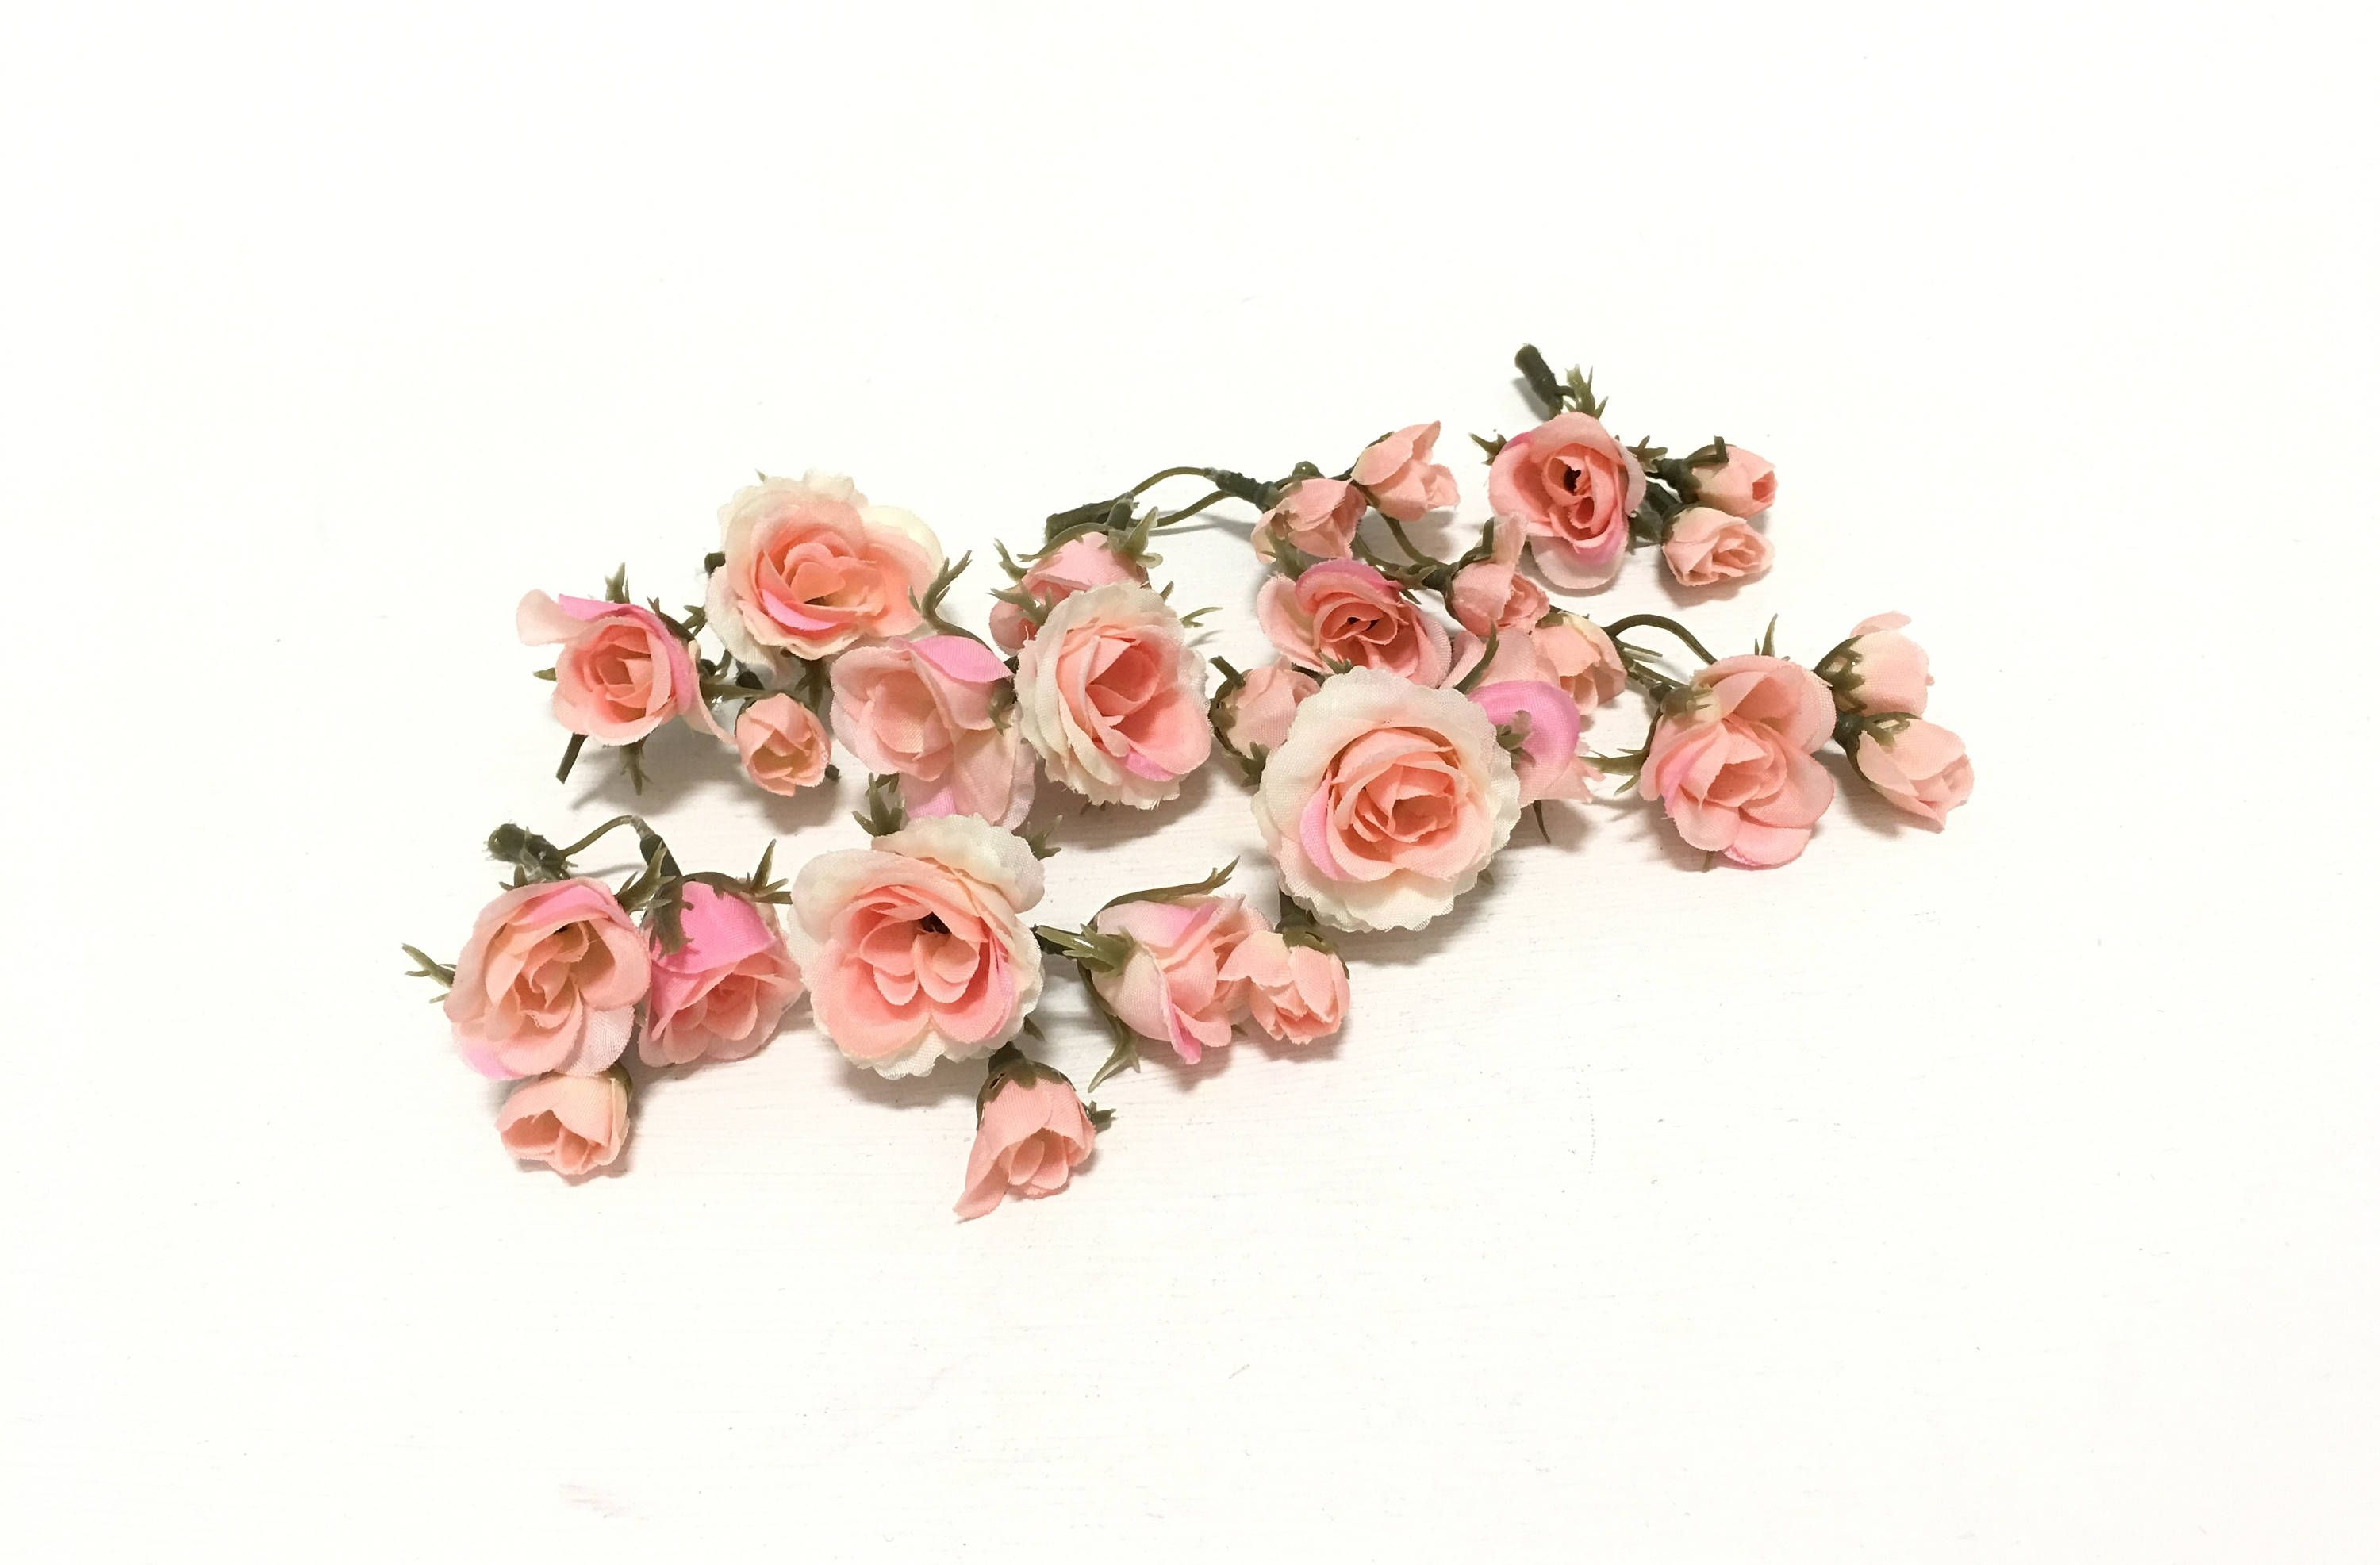 27 tiny peachy pink blush mini artificial roses silk flowers 27 tiny peachy pink blush mini artificial roses silk flowers artificial flowers flower mightylinksfo Gallery